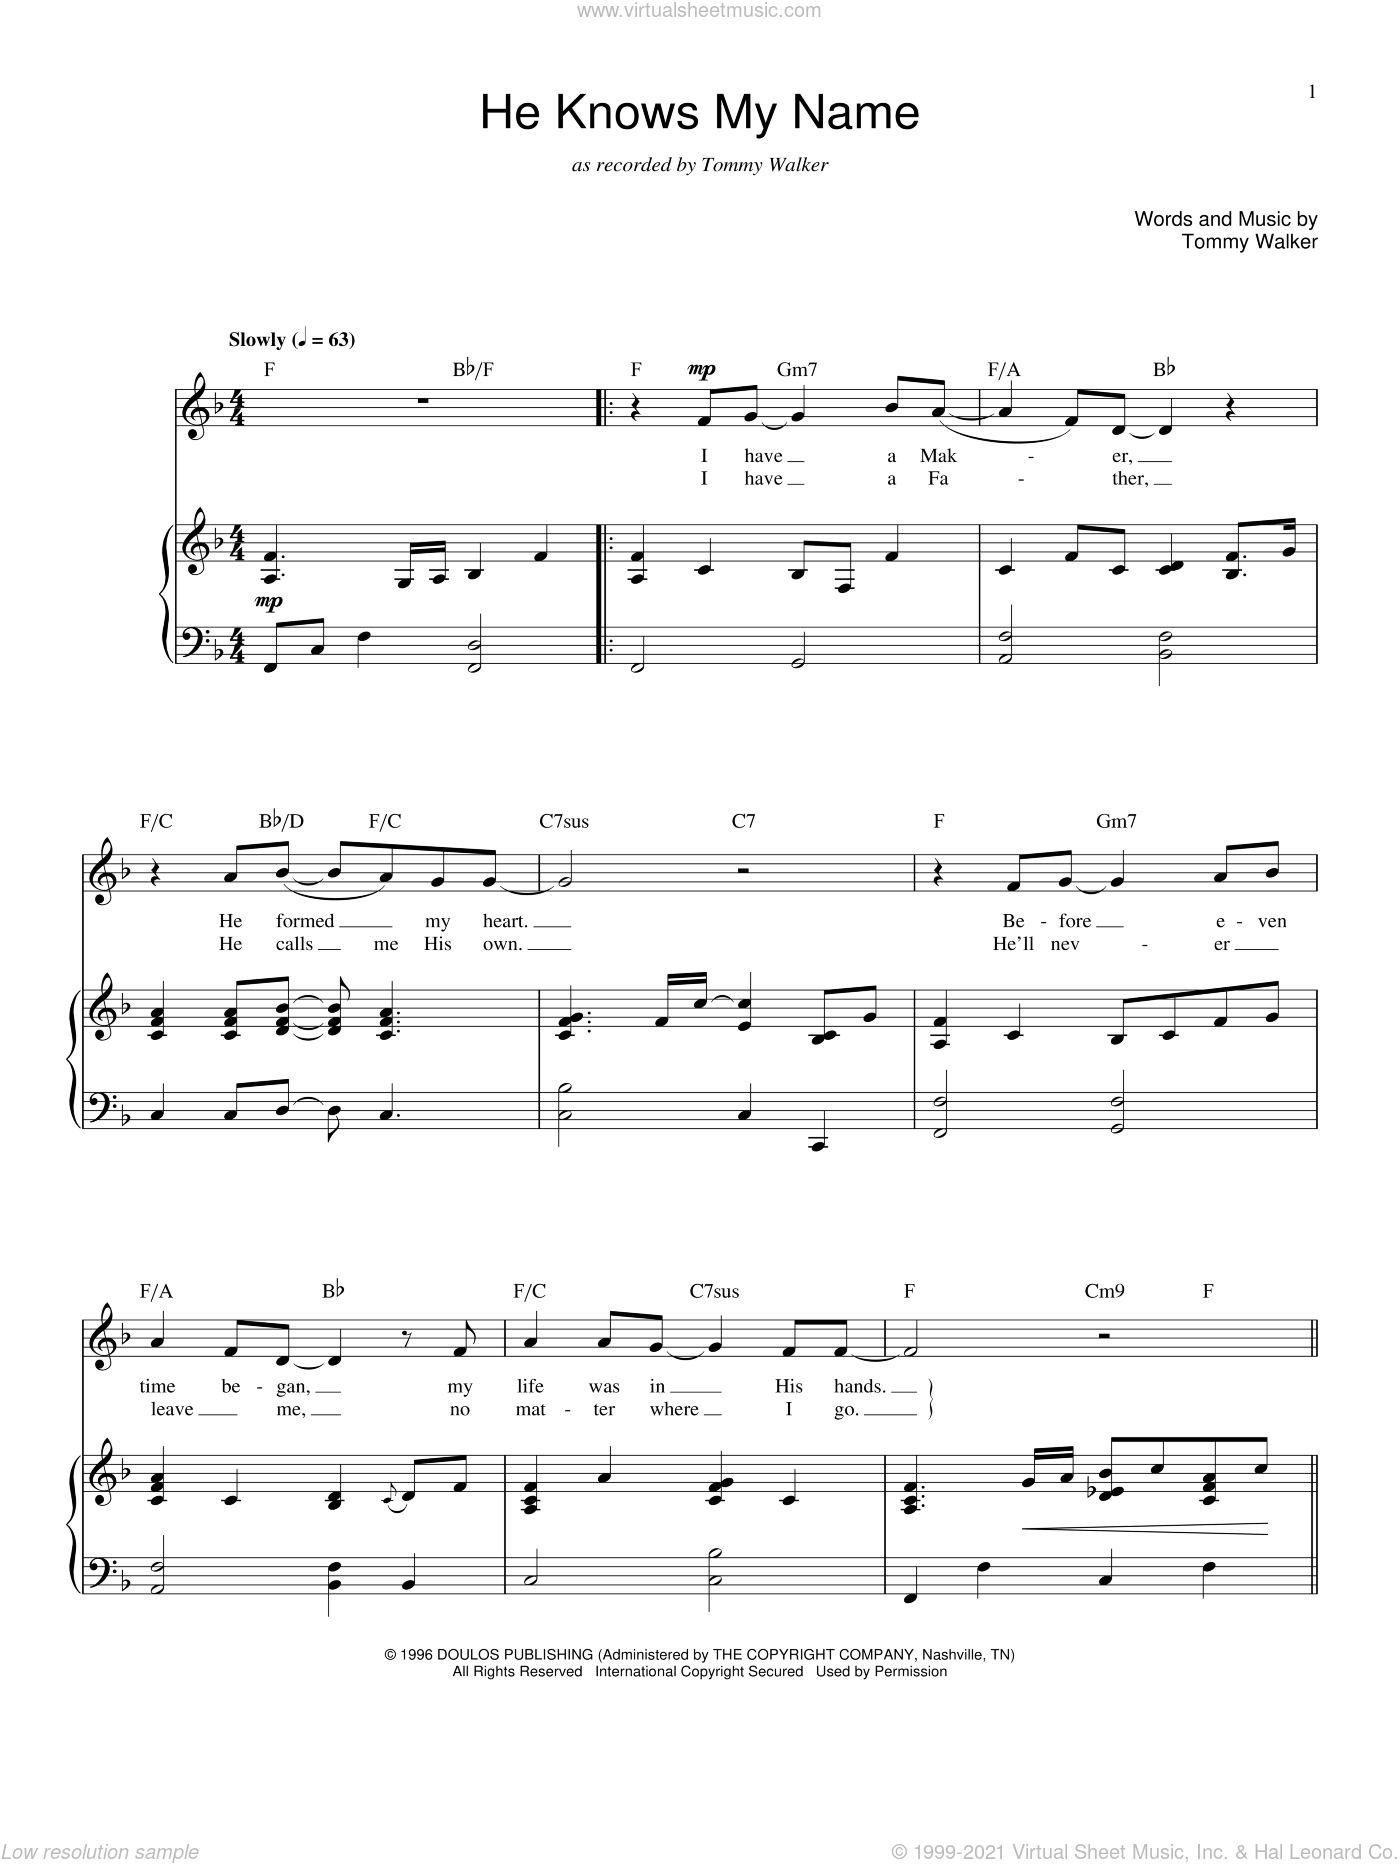 He Knows My Name sheet music for voice and piano by Tommy Walker, intermediate voice. Score Image Preview.